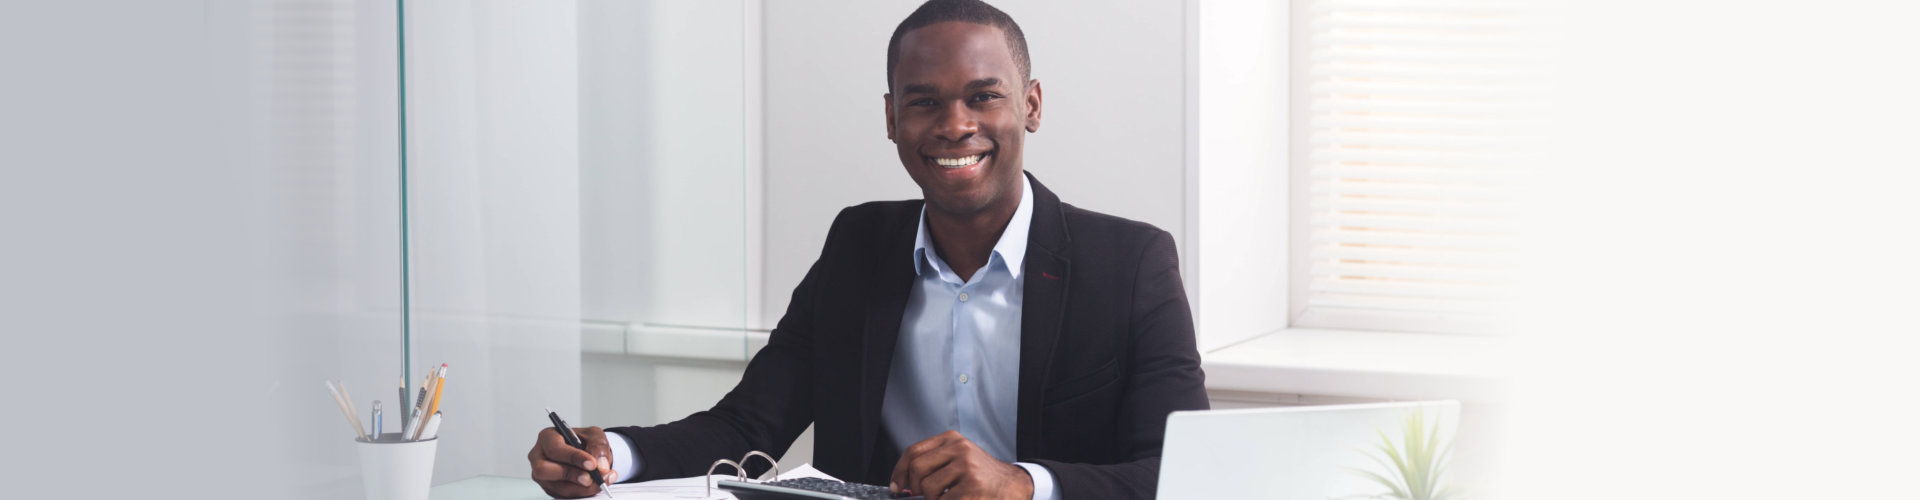 man smiling while sitting at his workplace